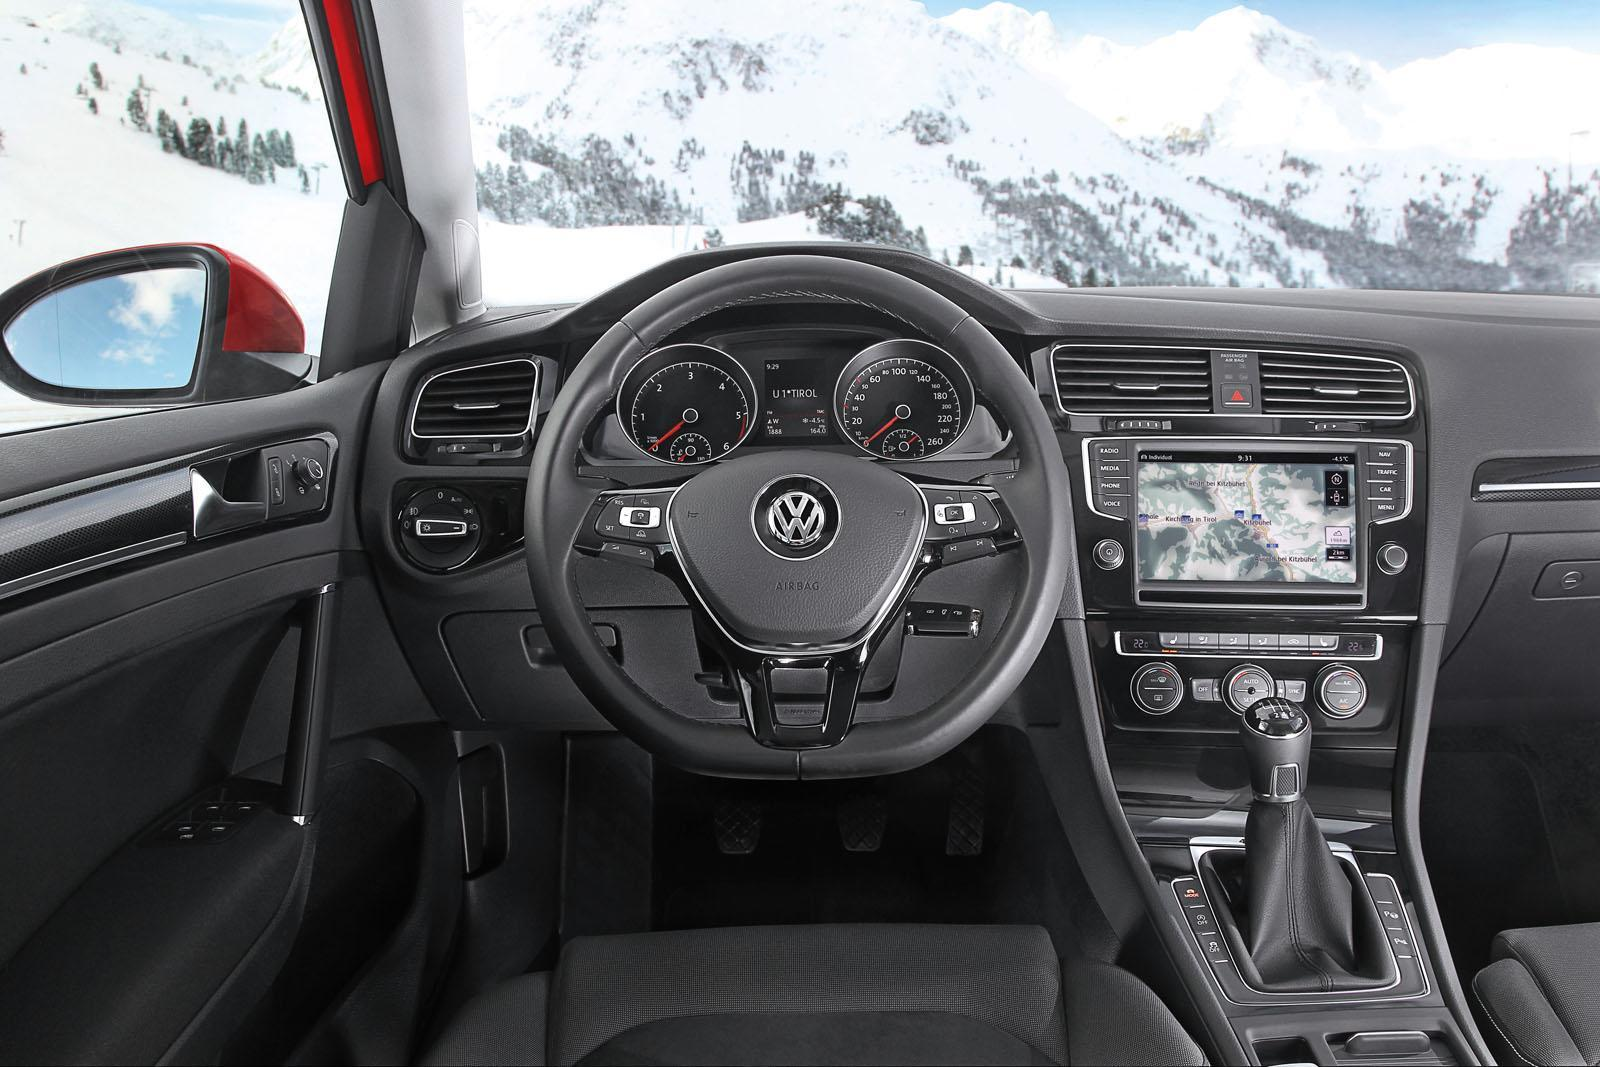 Vw golf 7 4motion 2013 la transmission 4x4 en d tails for Interieur golf